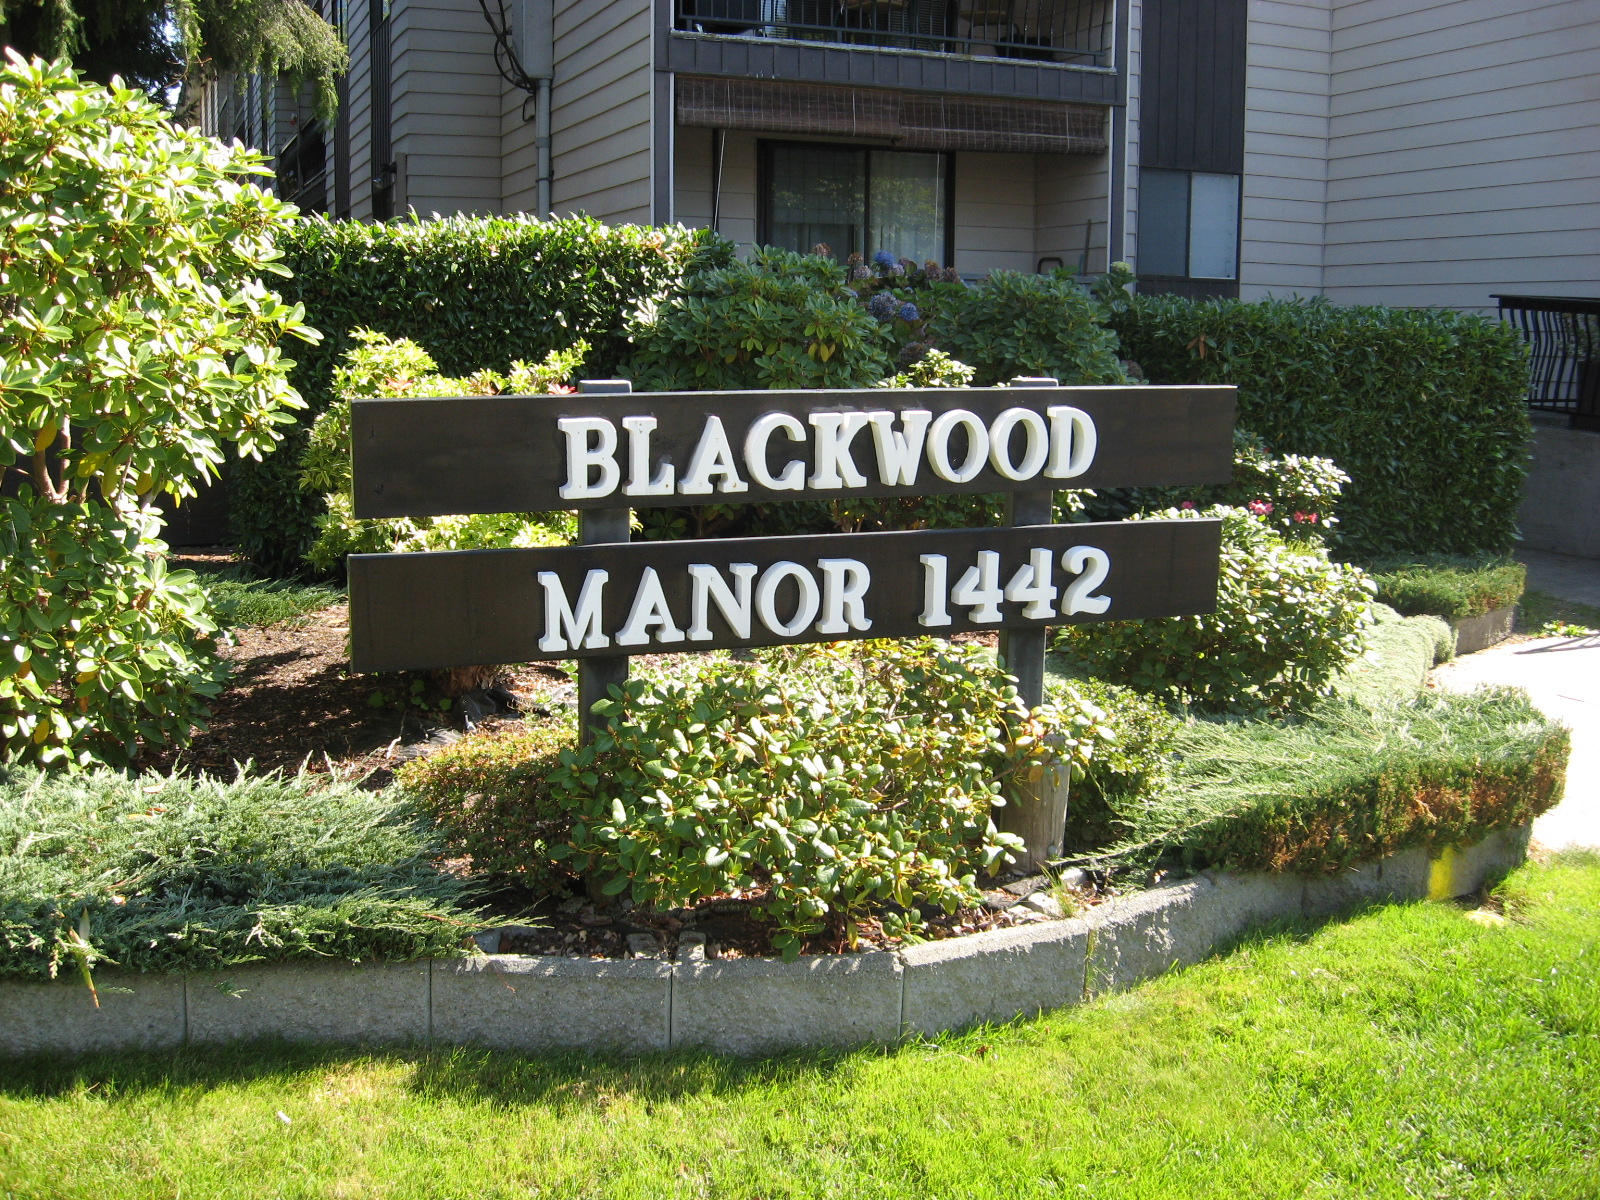 1442 Blackwood Street Blackwood Manor All South Surrey White Rock Condos And Listings For Sale In South Surrey White Rock And Detailed Building Information